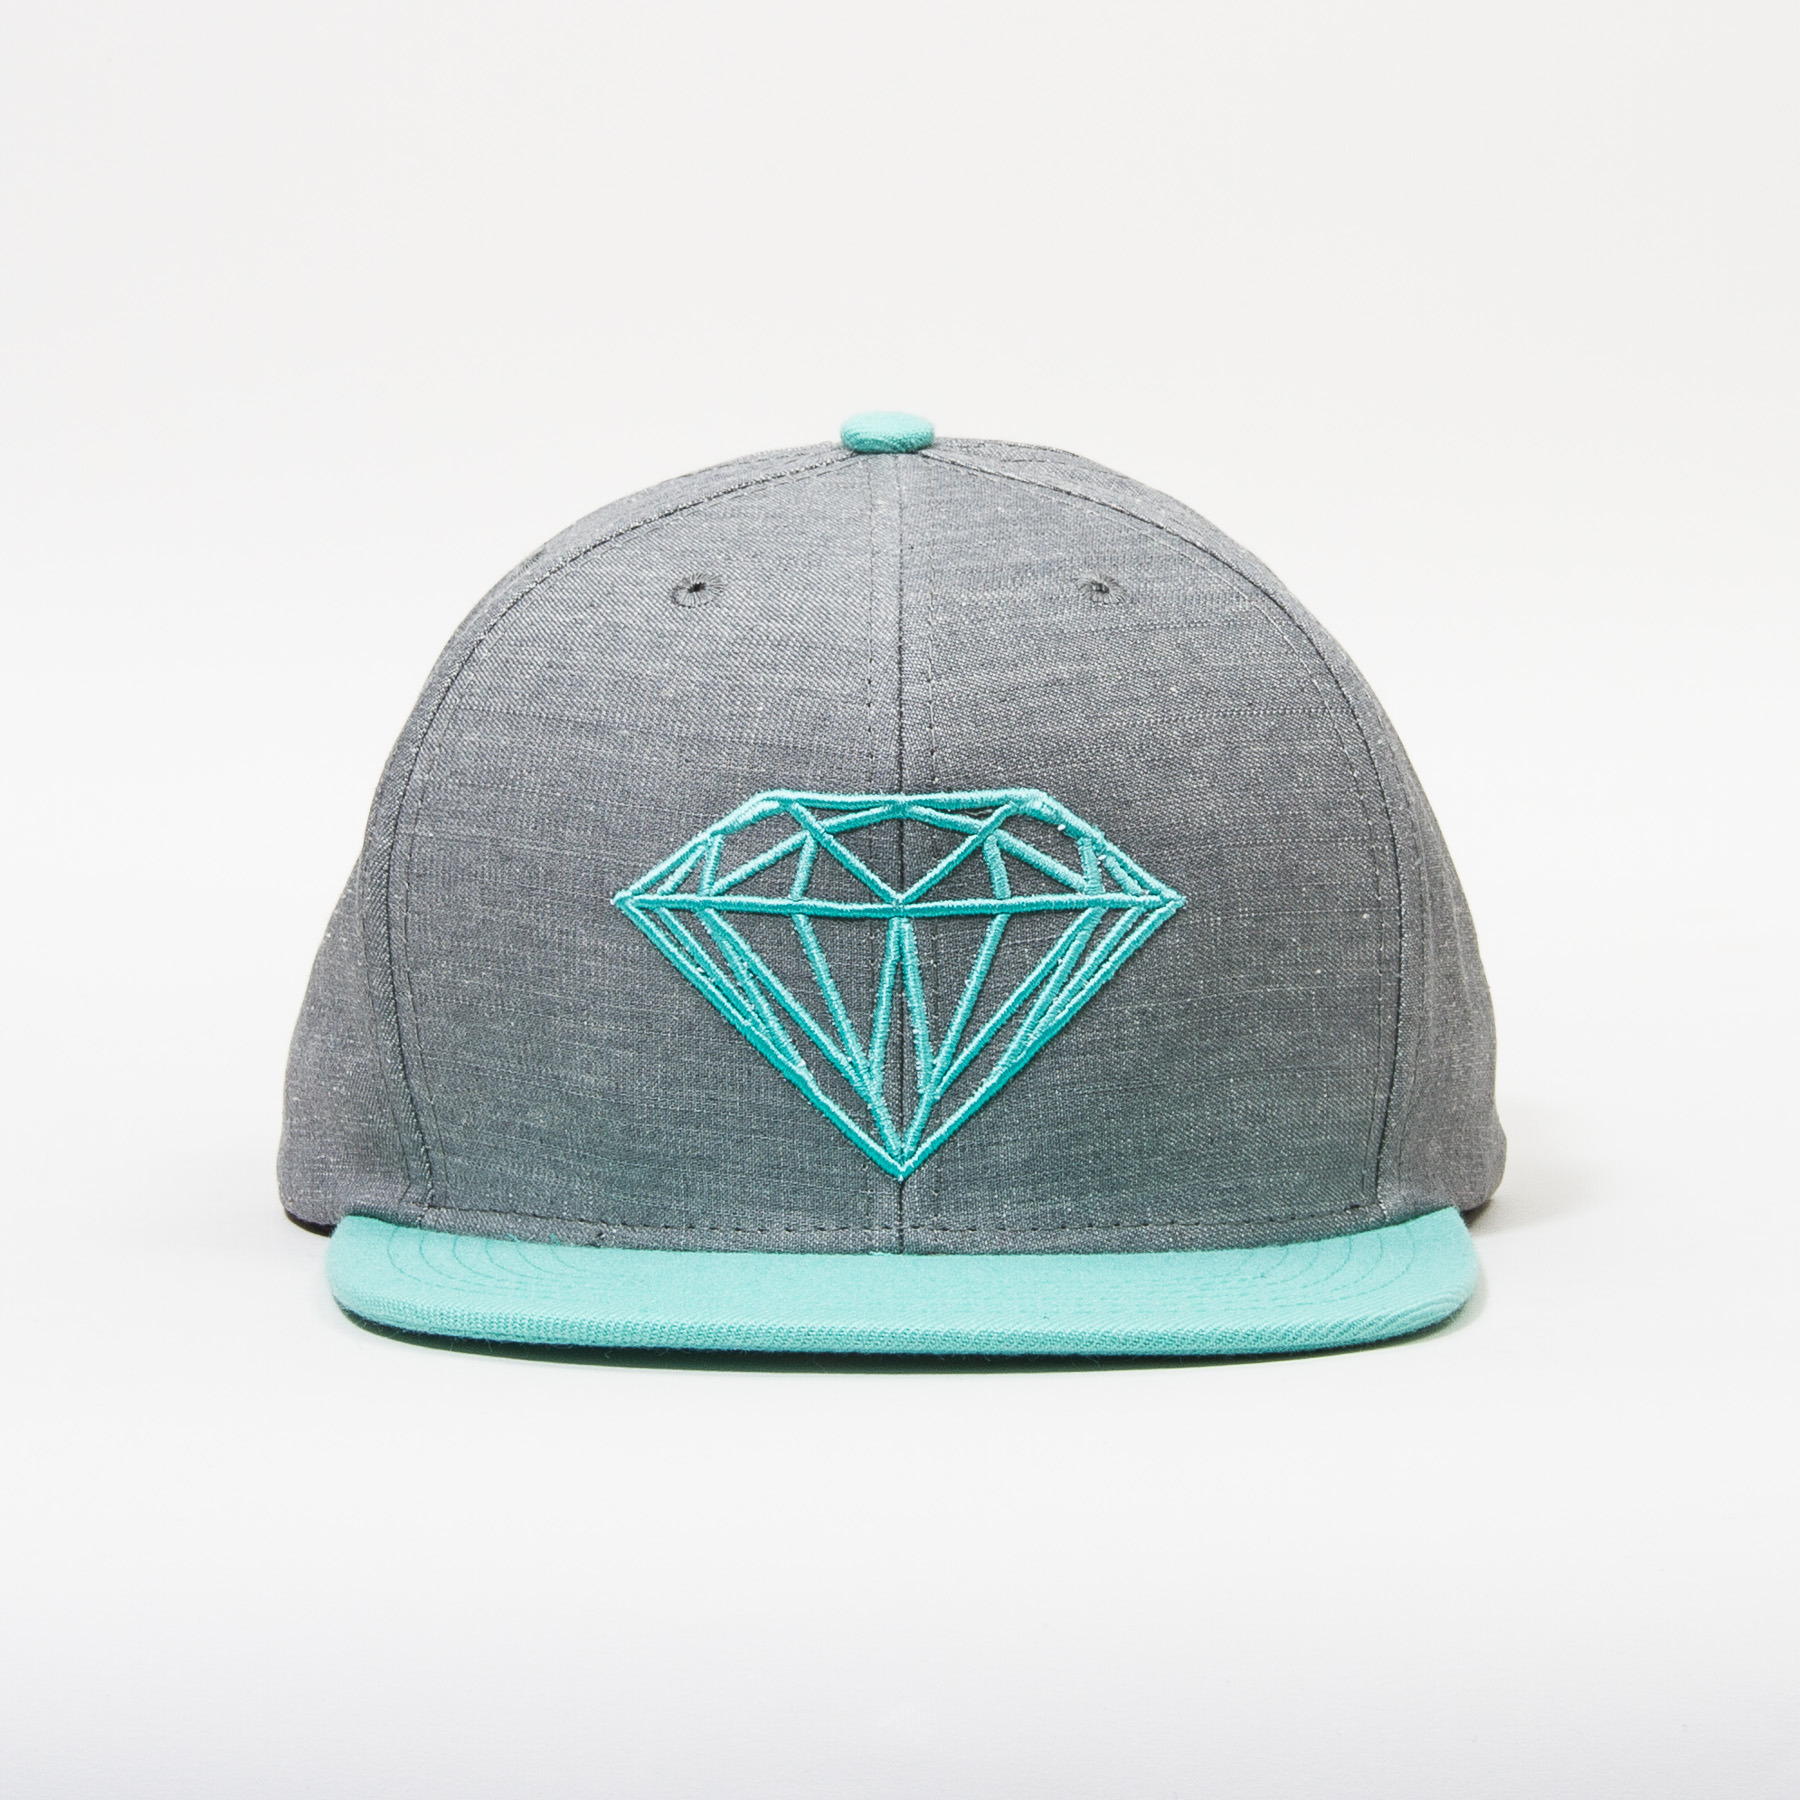 405f6a4279767 ... store hat diamond supply co. blue hat grey hat diamonds snapback hat  wheretoget 2ca25 38596 ...